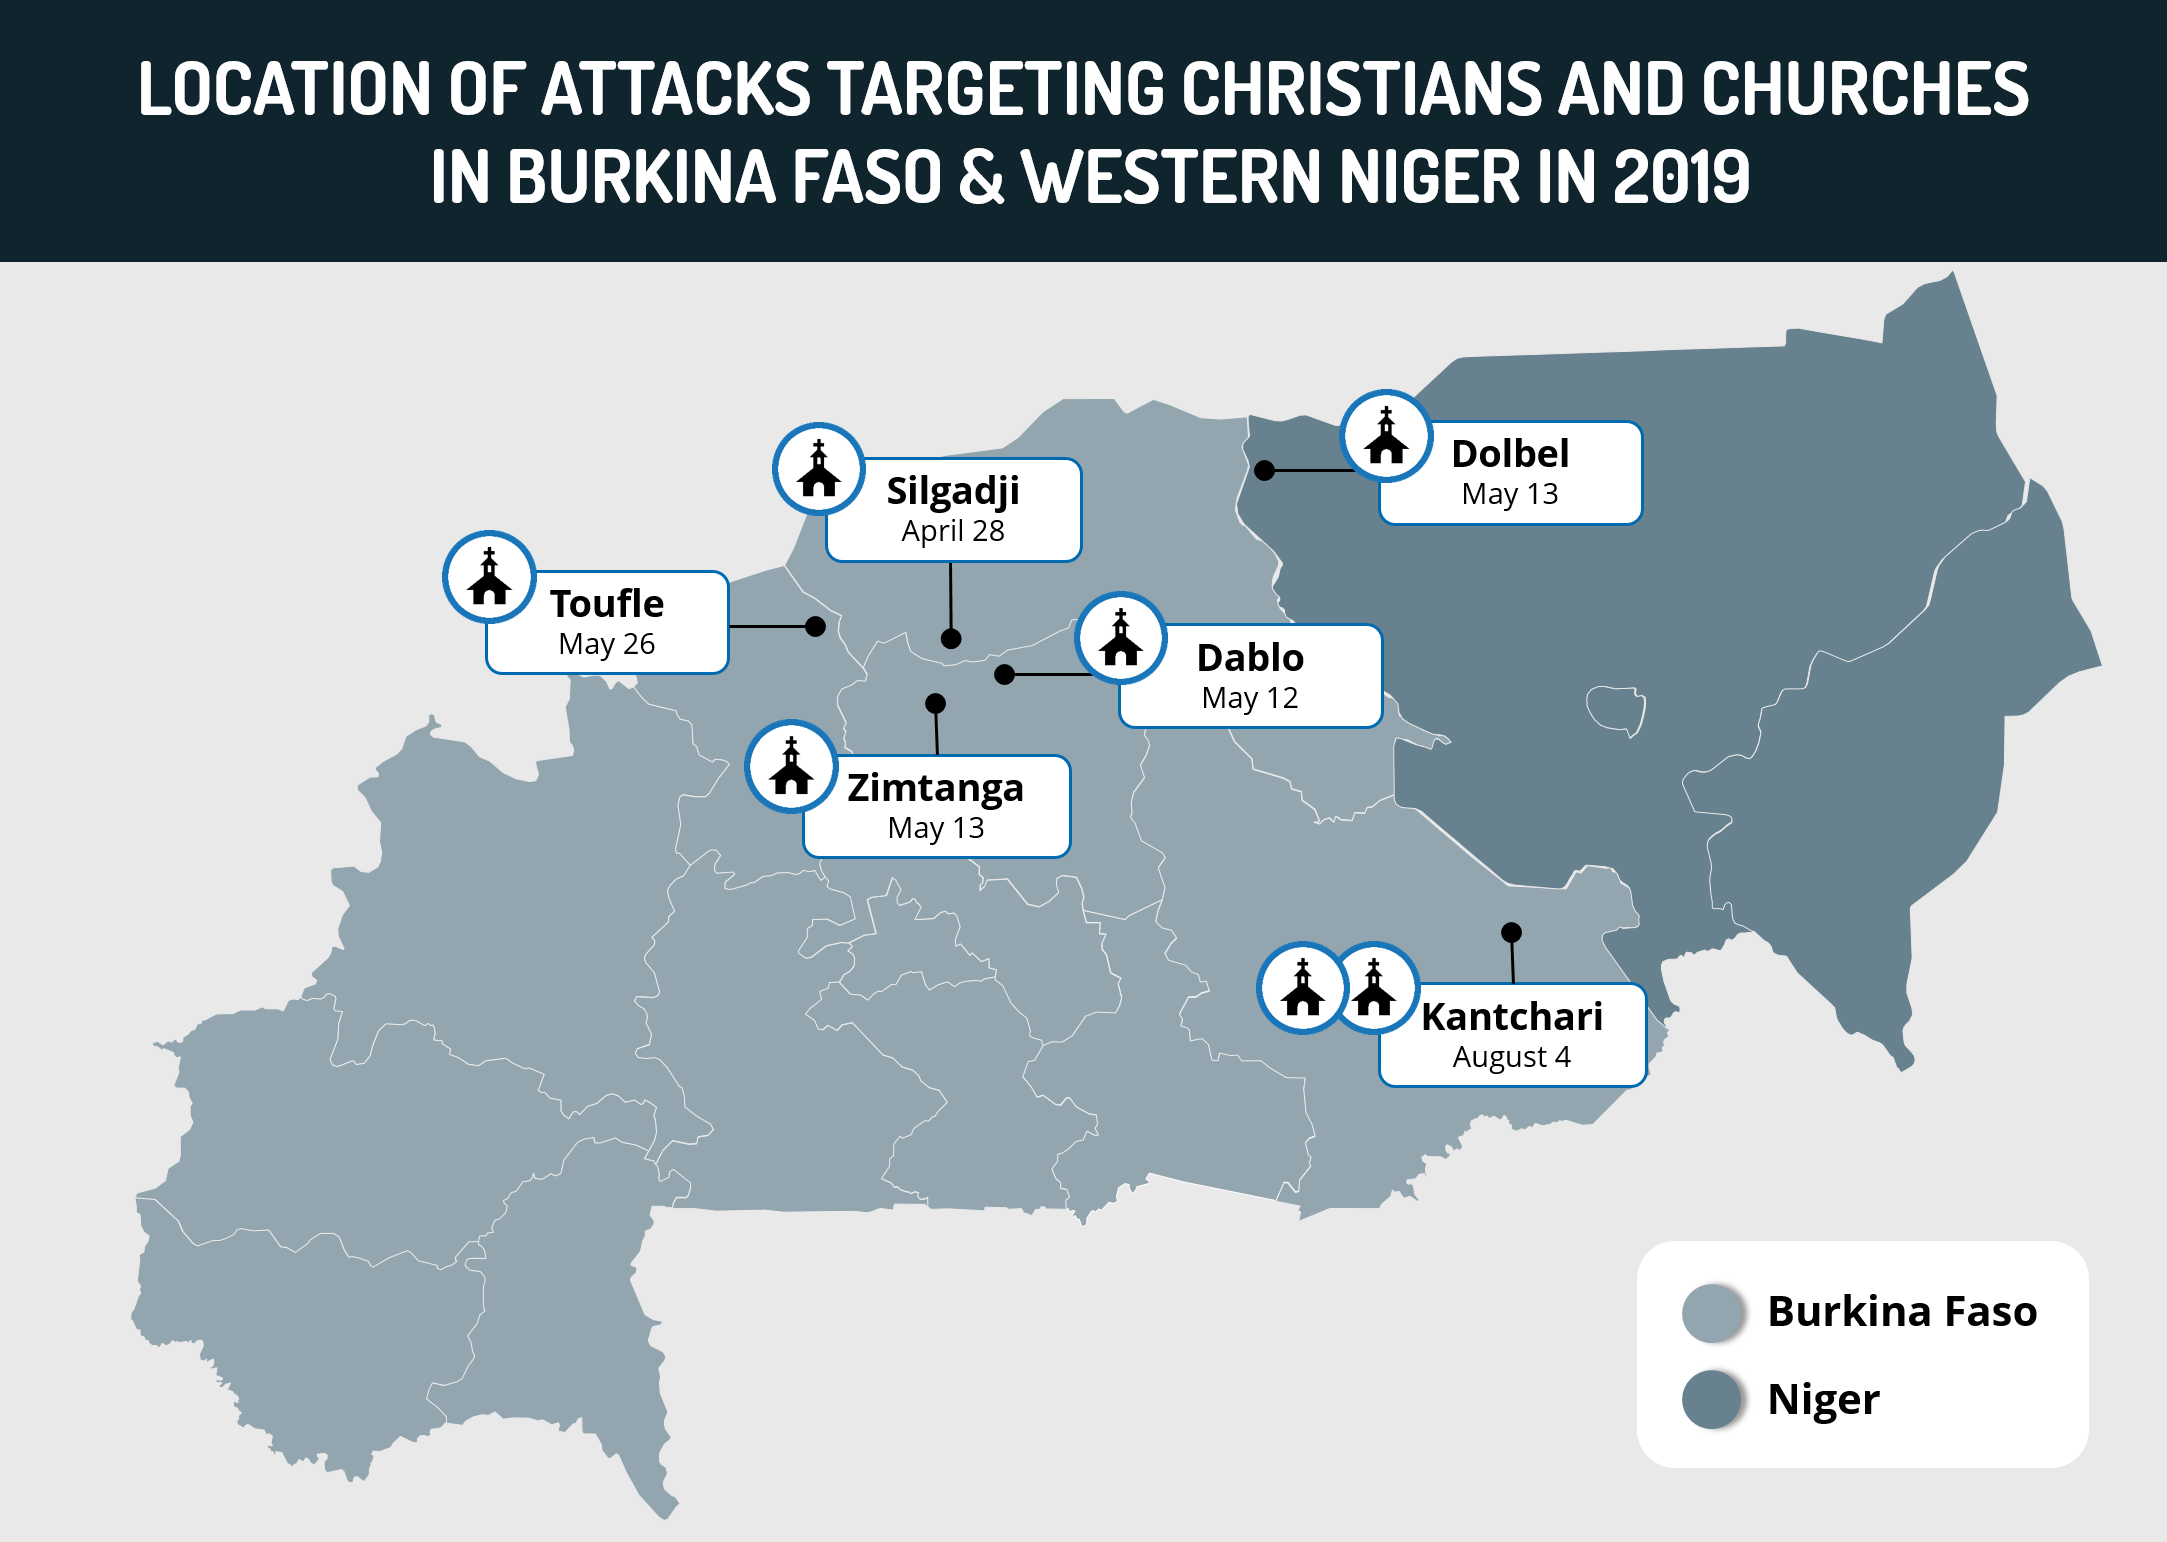 Location of Attacks targeting Christians and Churches in Burkina Faso & Western niger in 2019